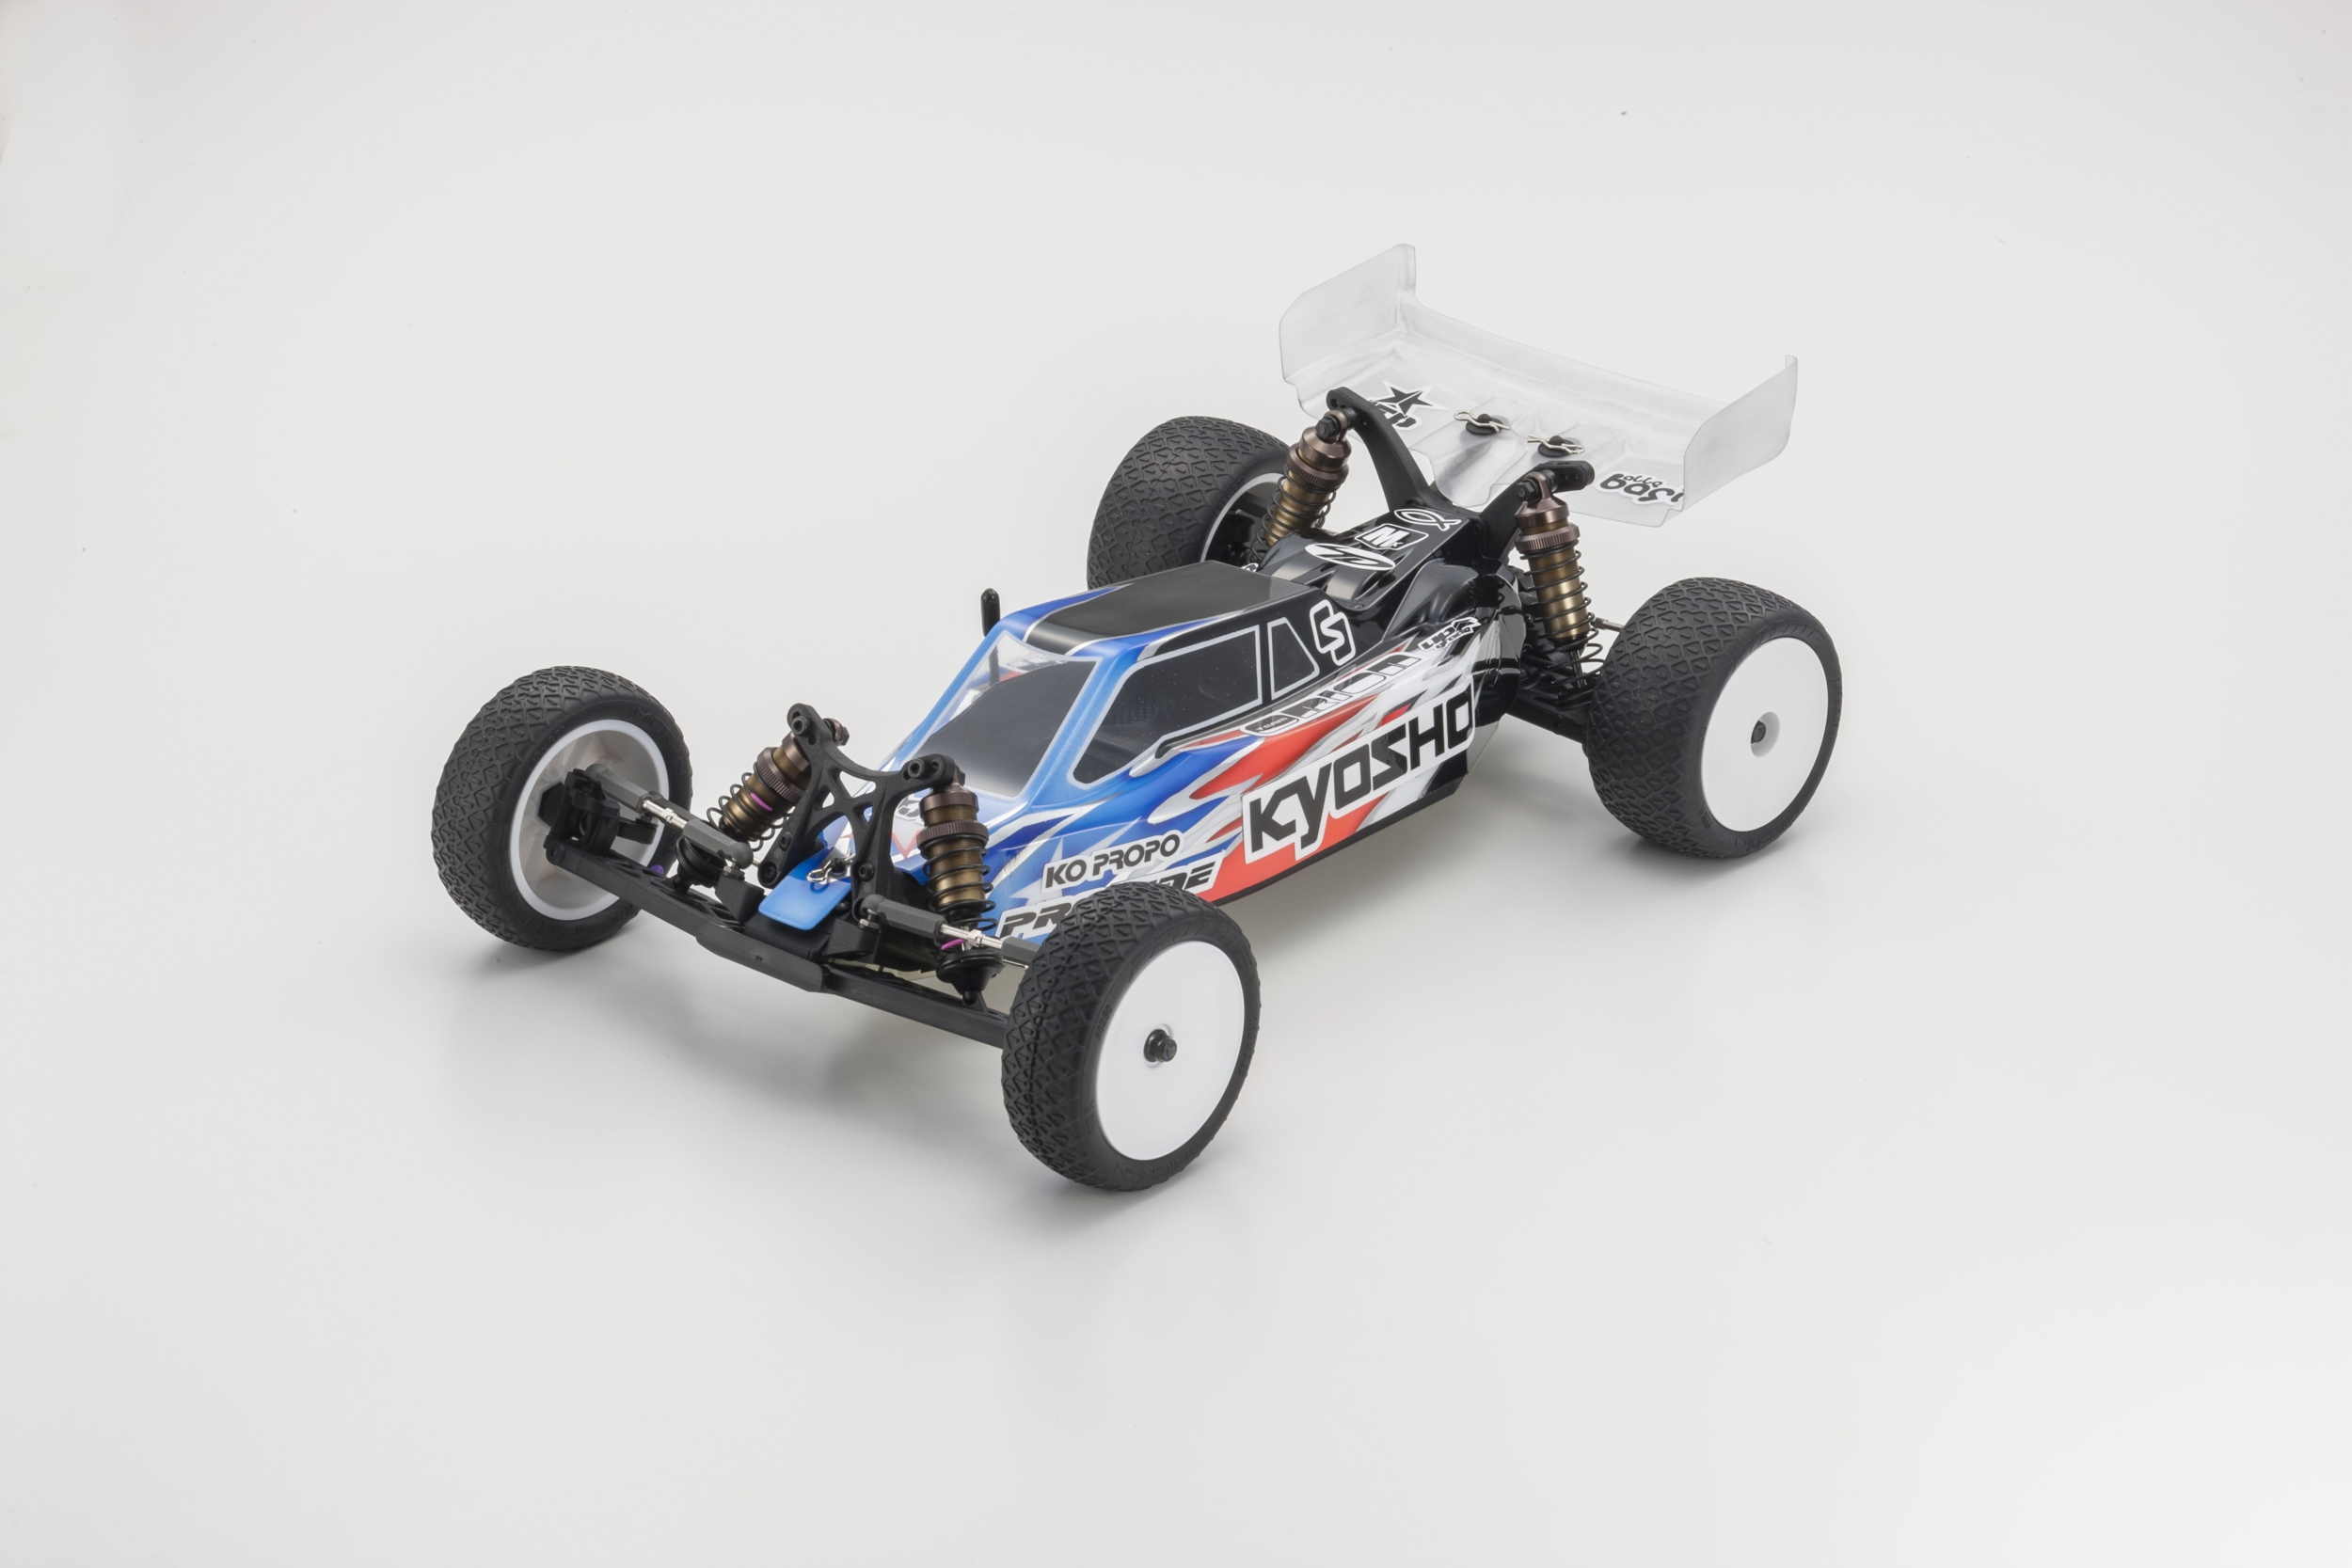 KYOSHO ULTIMA RB6.6 1:10 2WD KIT, 34302B